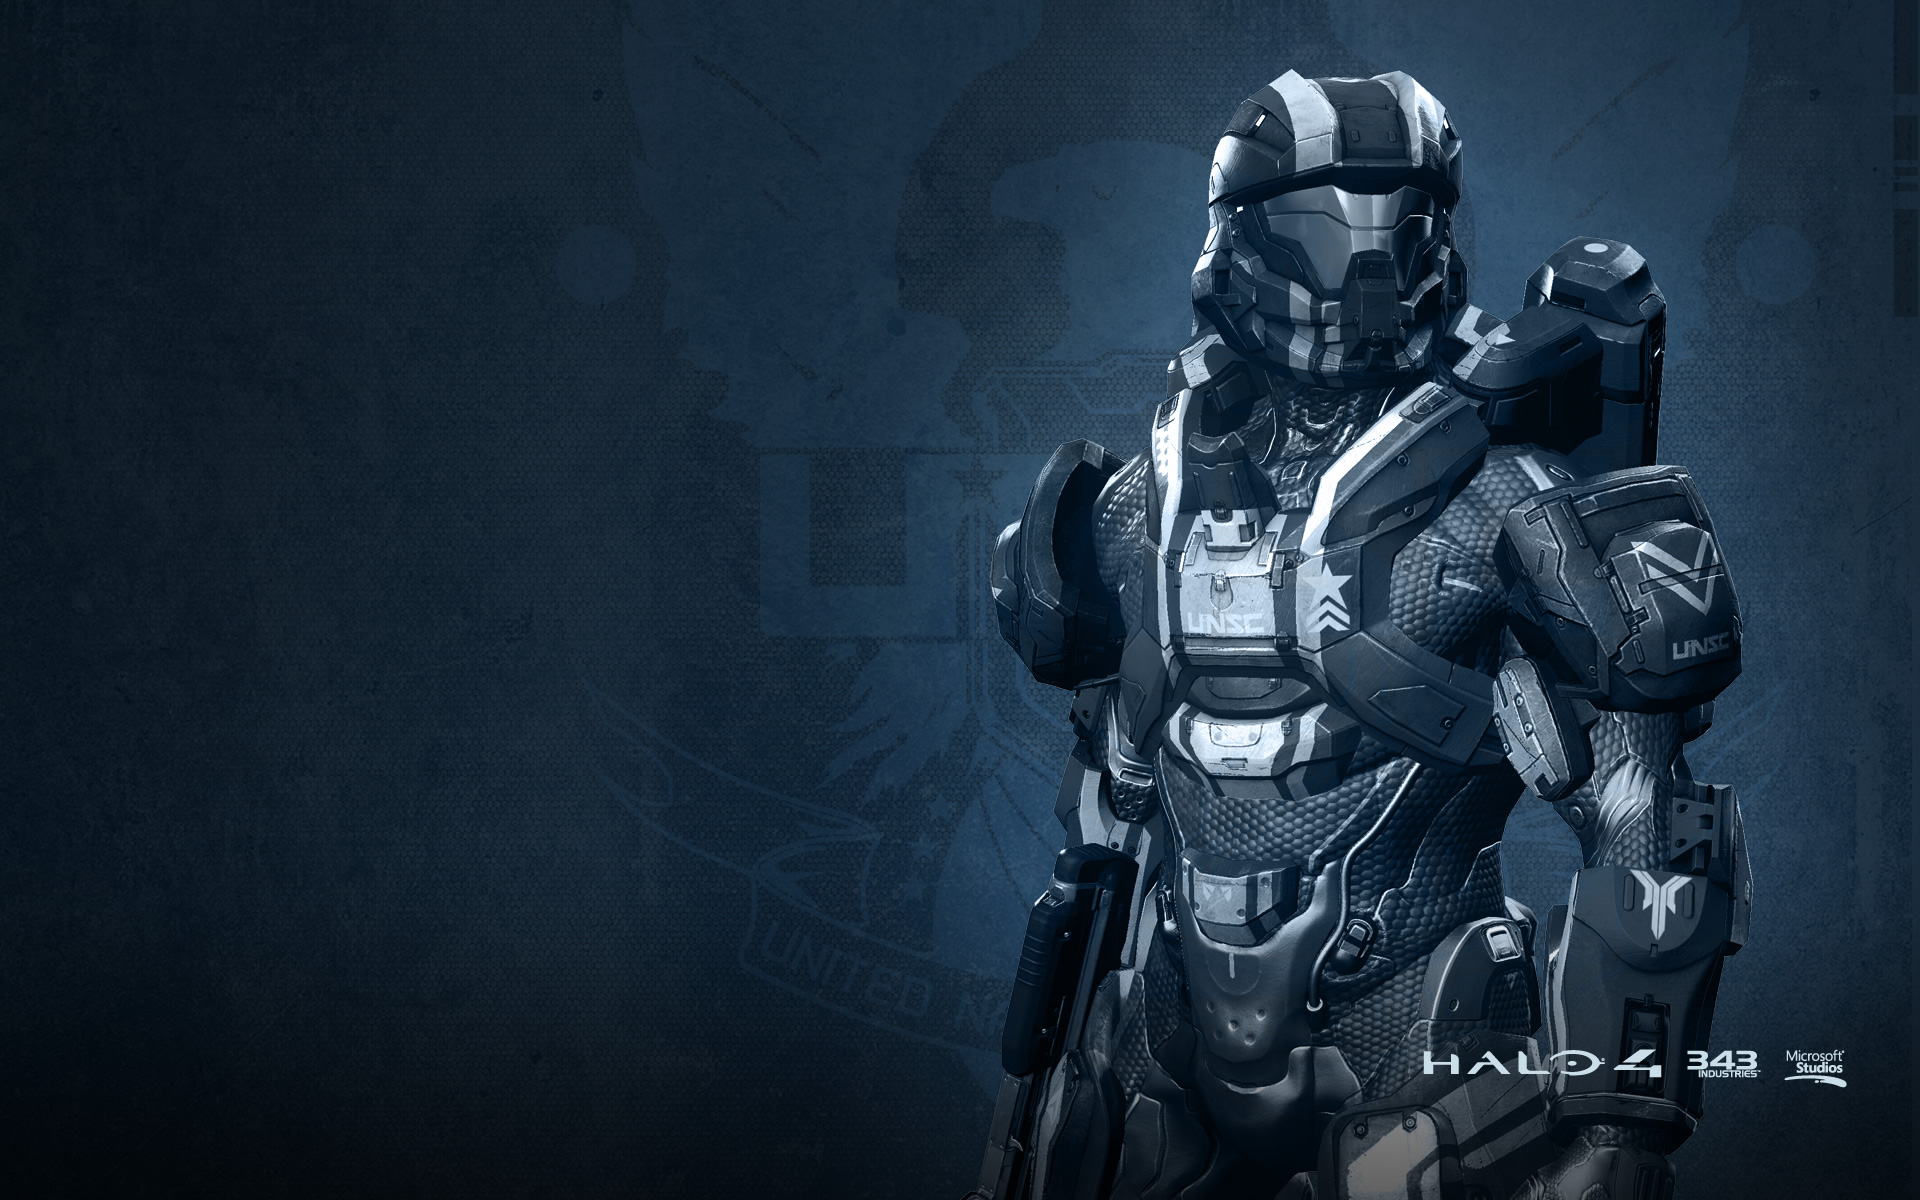 Halo 4 wallpapers 6 1920x1200